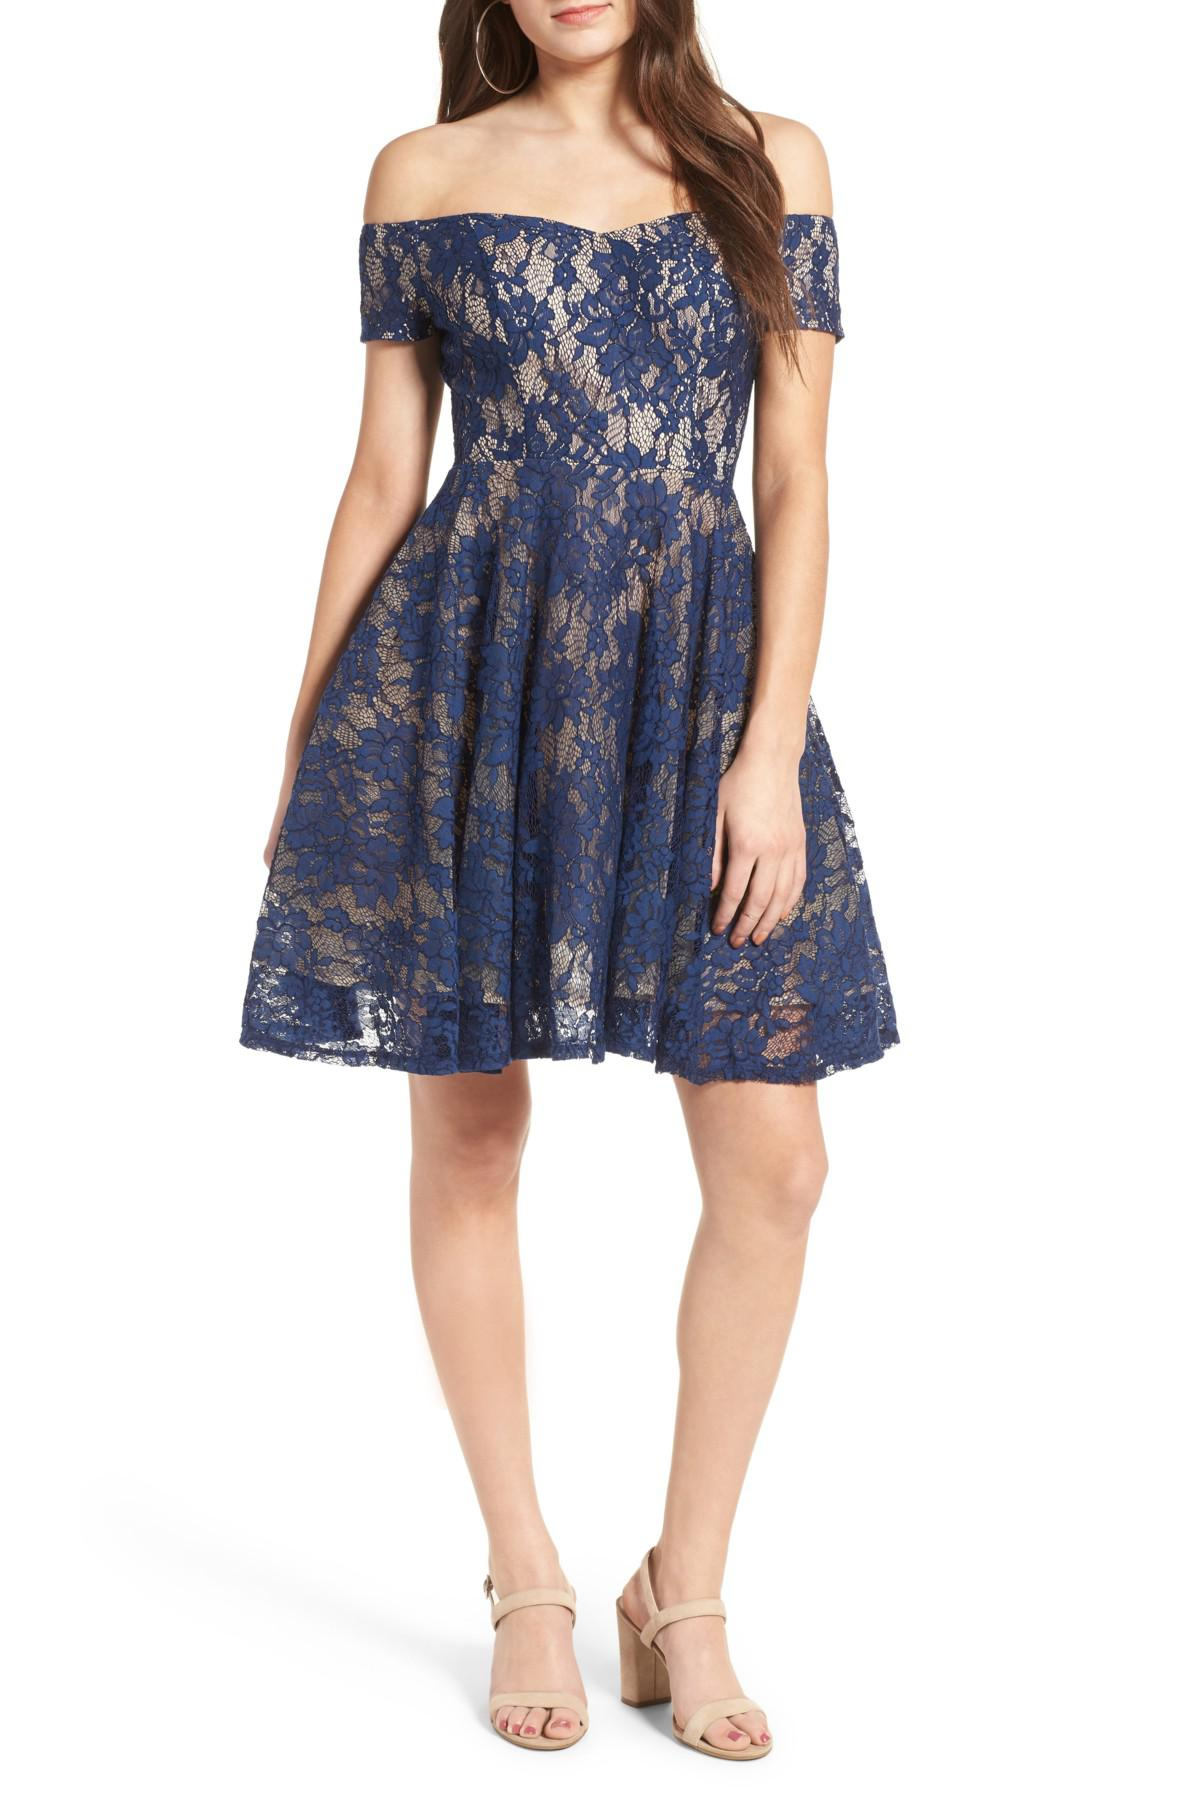 9c5466a3d1c5 Lyst - Soprano Lace Off The Shoulder Fit   Flare Dress in Blue